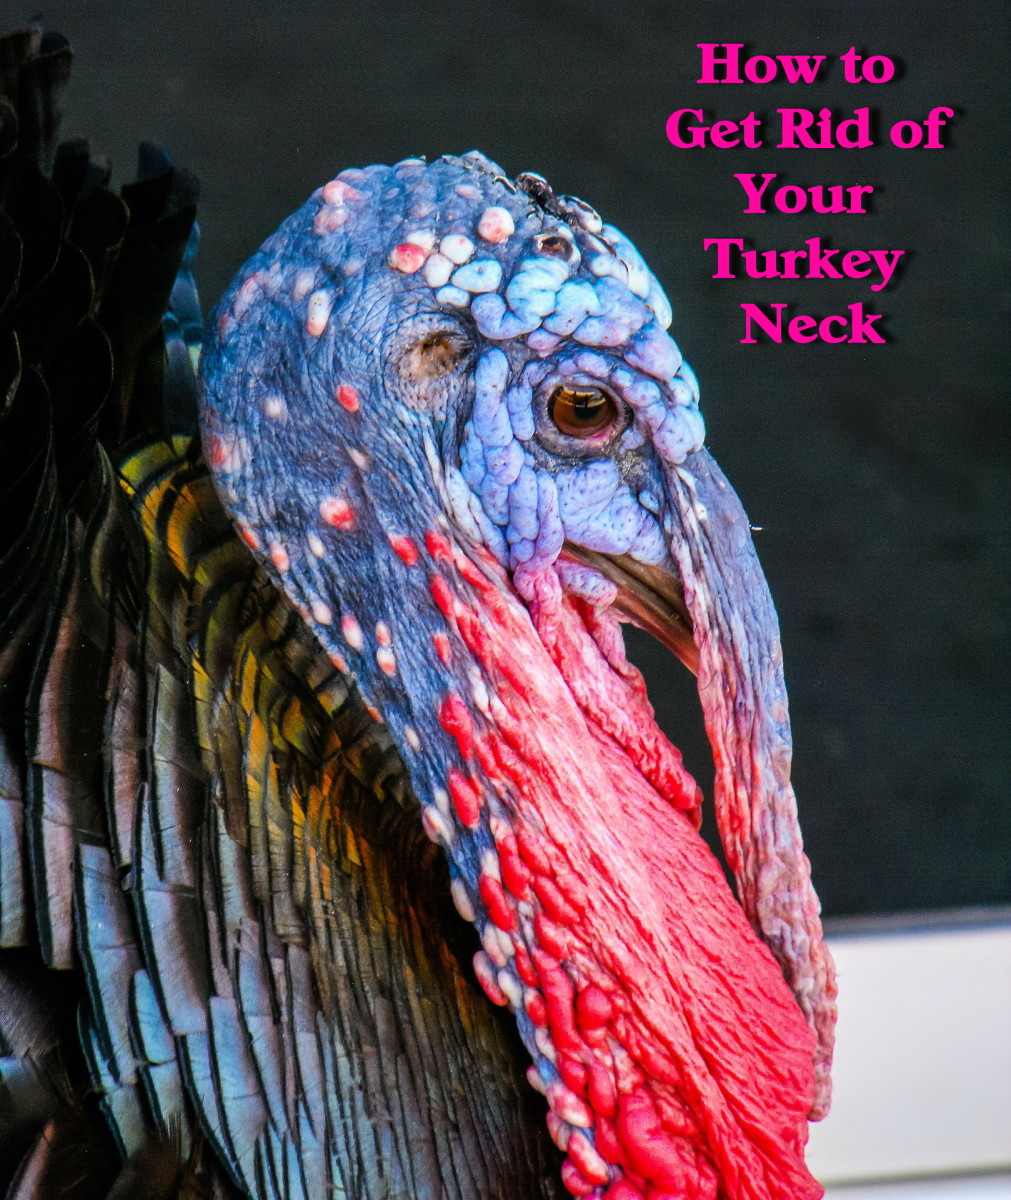 How to Get Rid of Your Turkey Neck